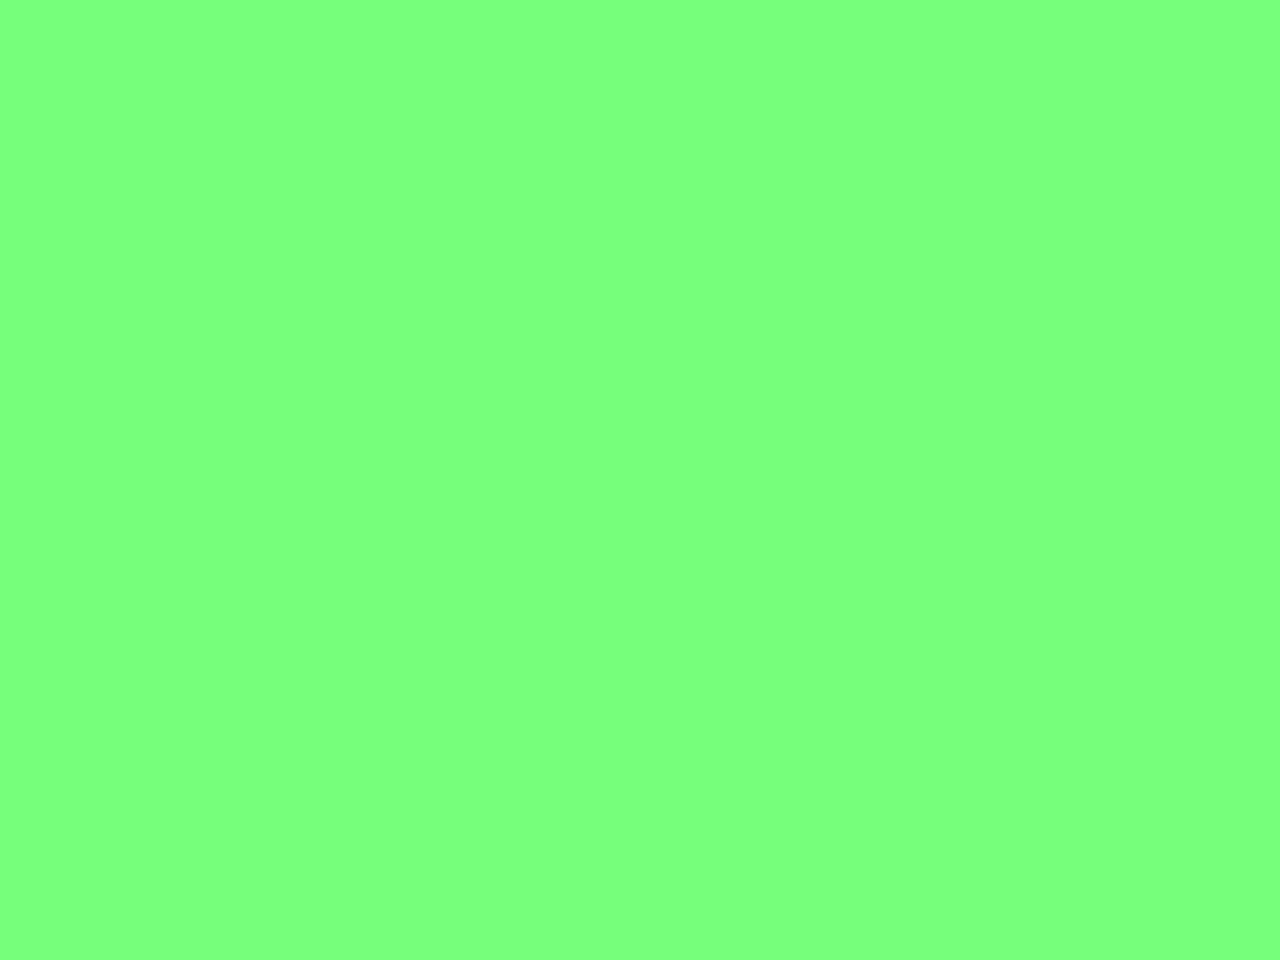 1280x960 Screamin Green Solid Color Background